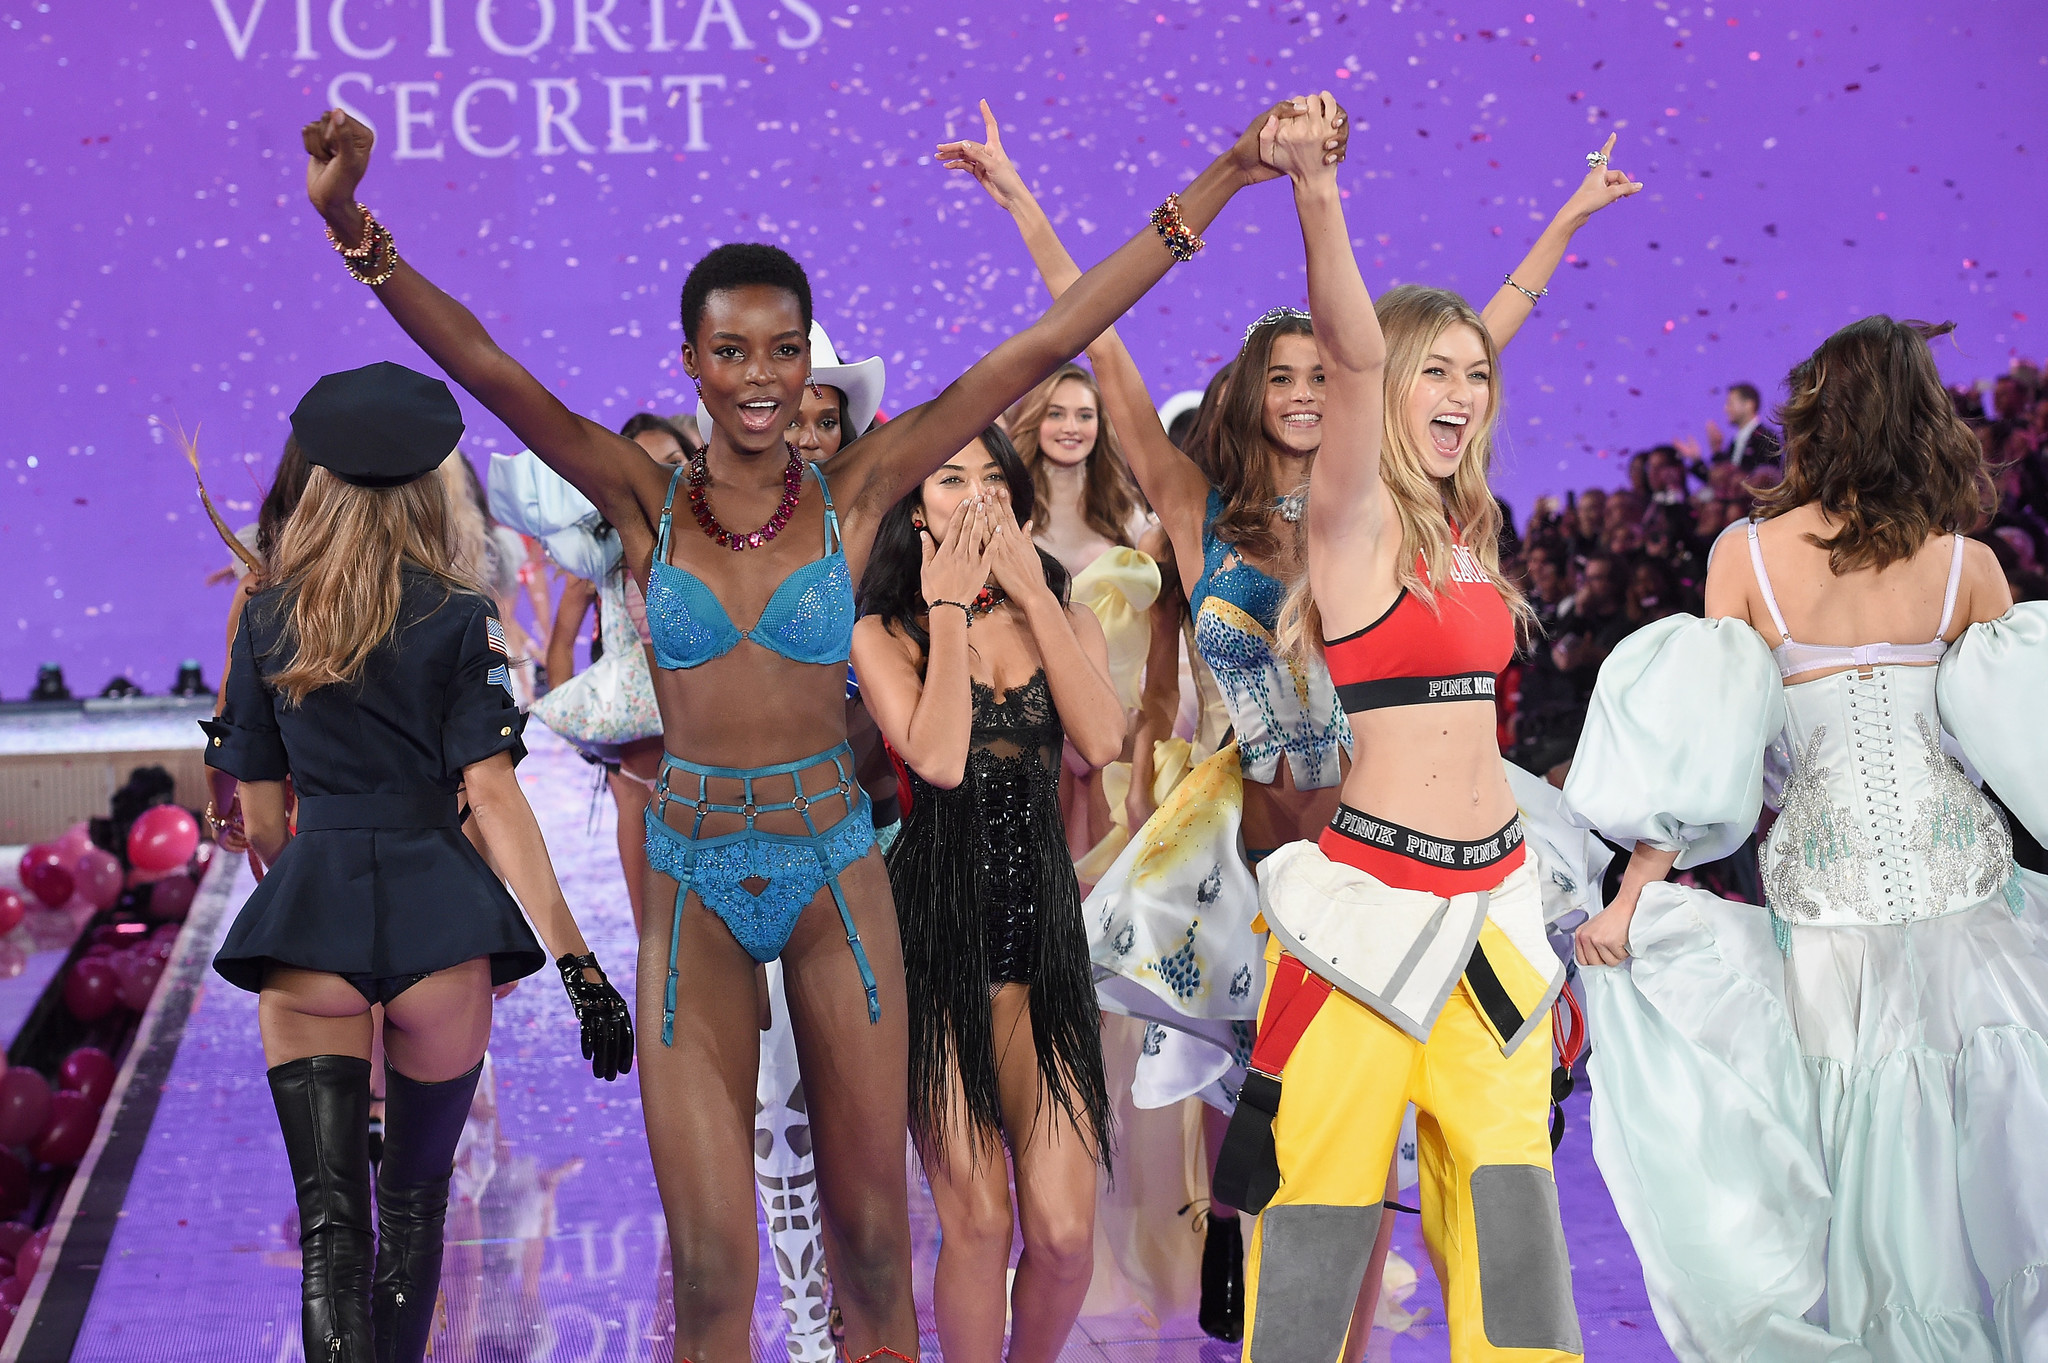 Victorias Secret Fashion Show will return to New York after stints overseas